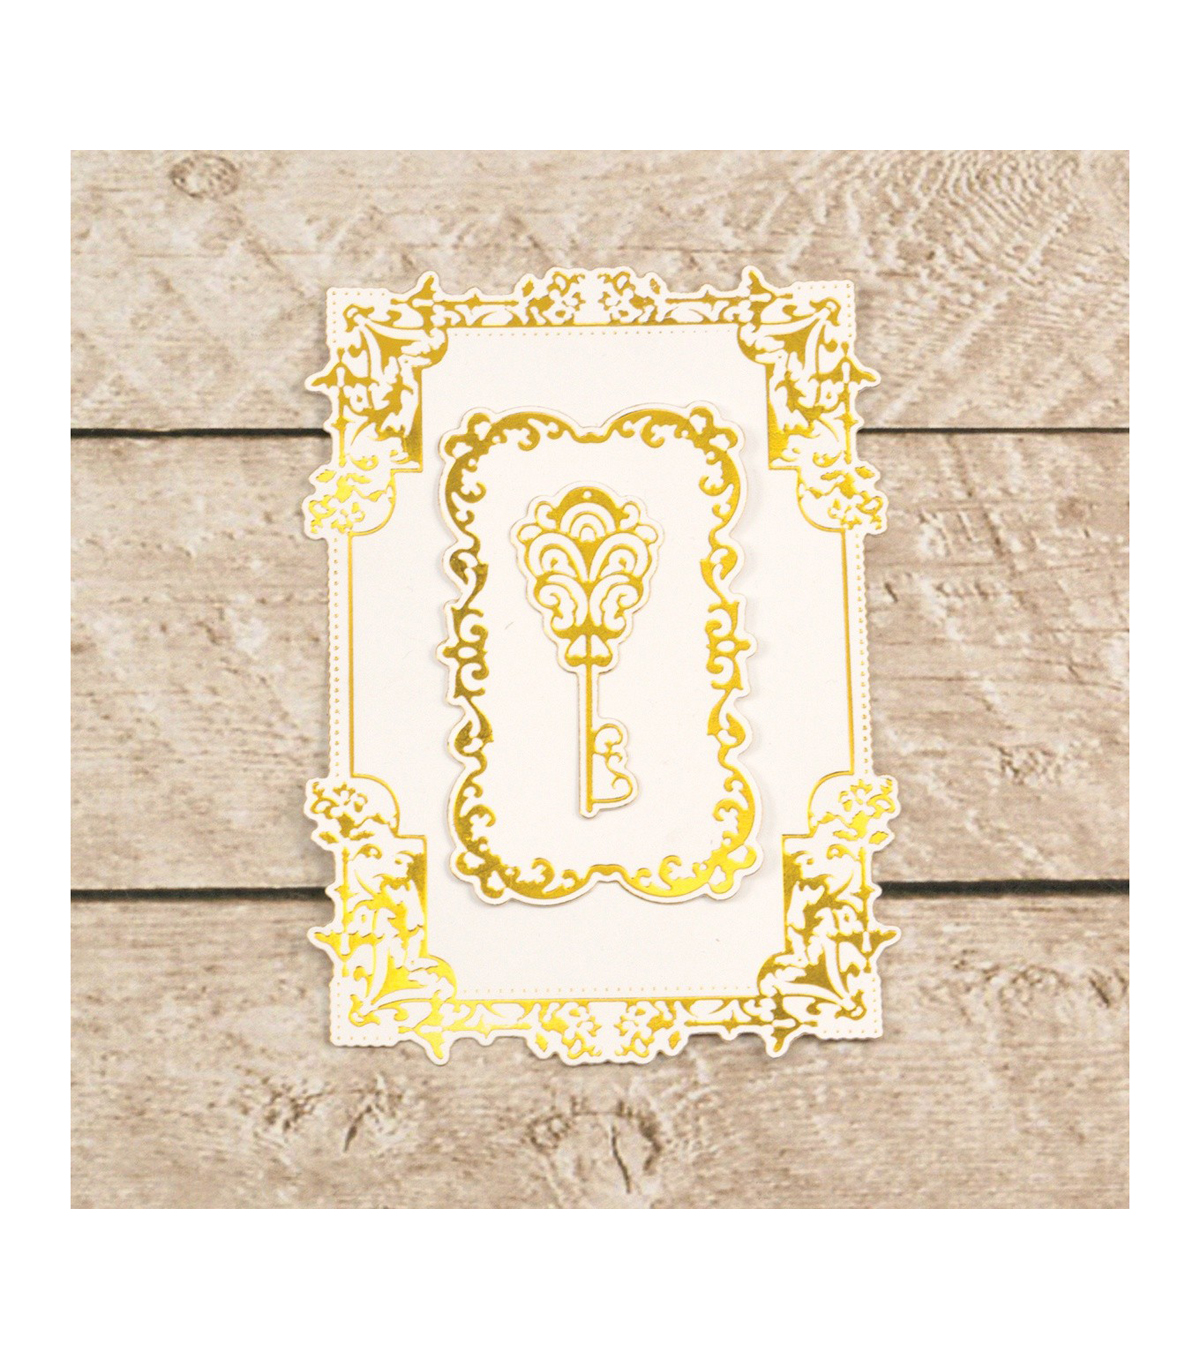 Couture Creations Cut, Foil & Emboss Nesting Dies-Treasured Frames